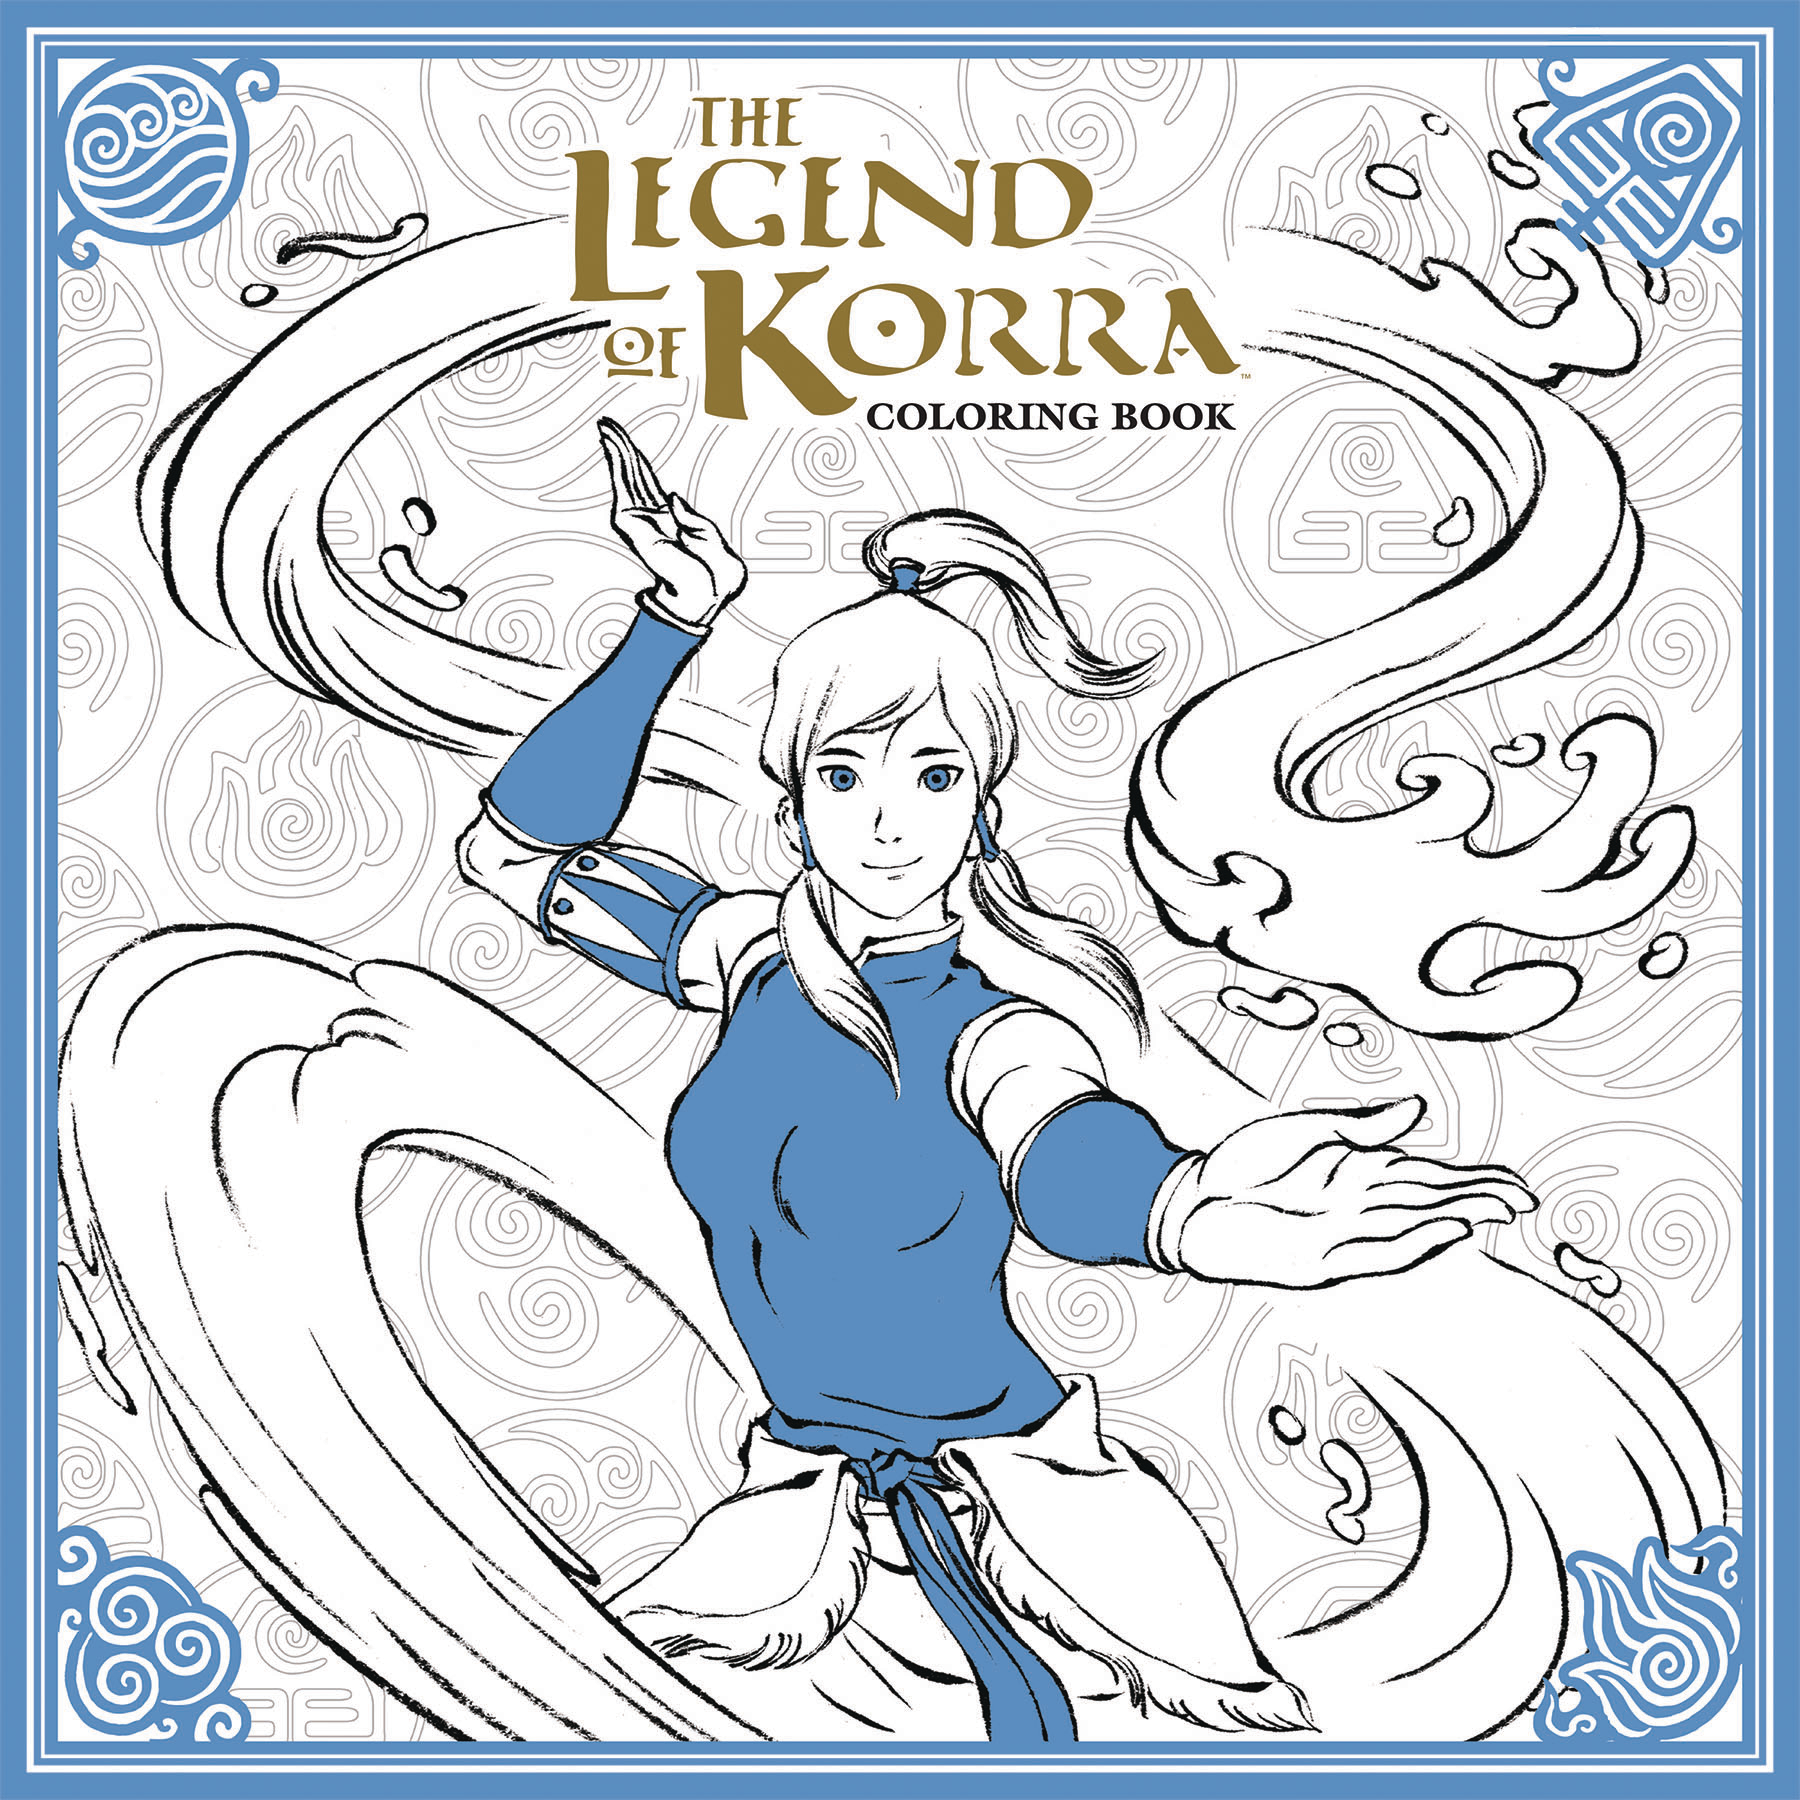 LEGEND OF KORRA COLORING BOOK TP (MAR170062)